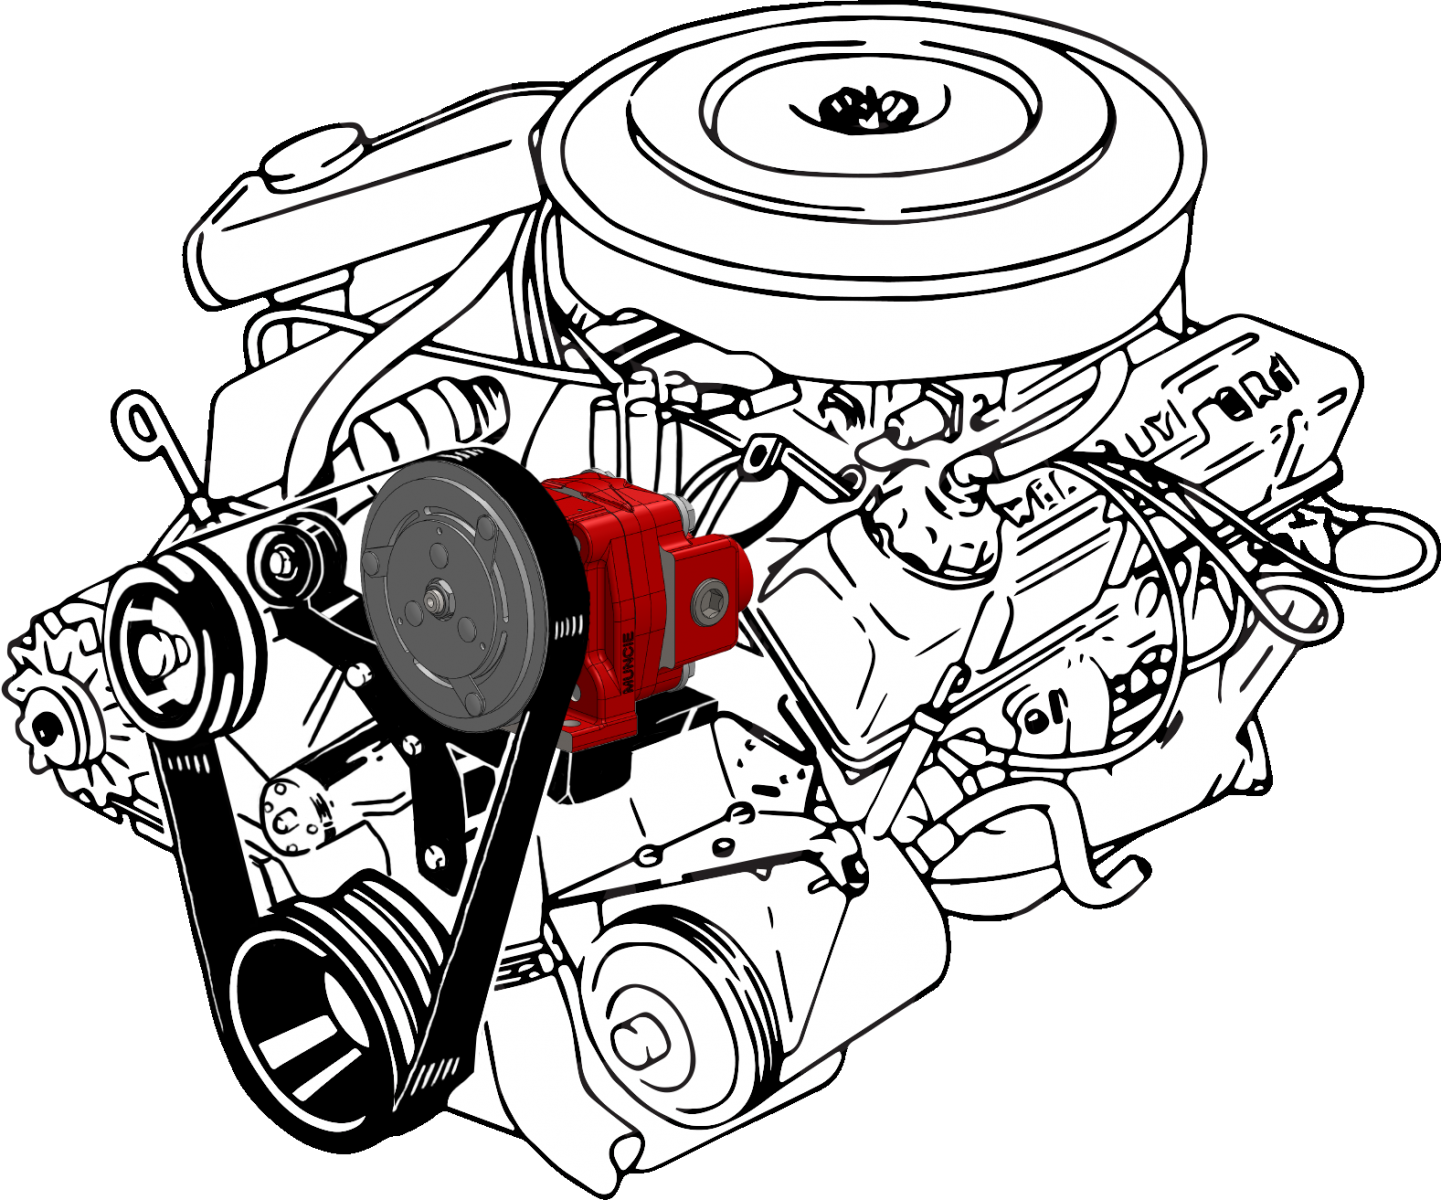 Illustration of a clutch pump with belt attached to an engine.